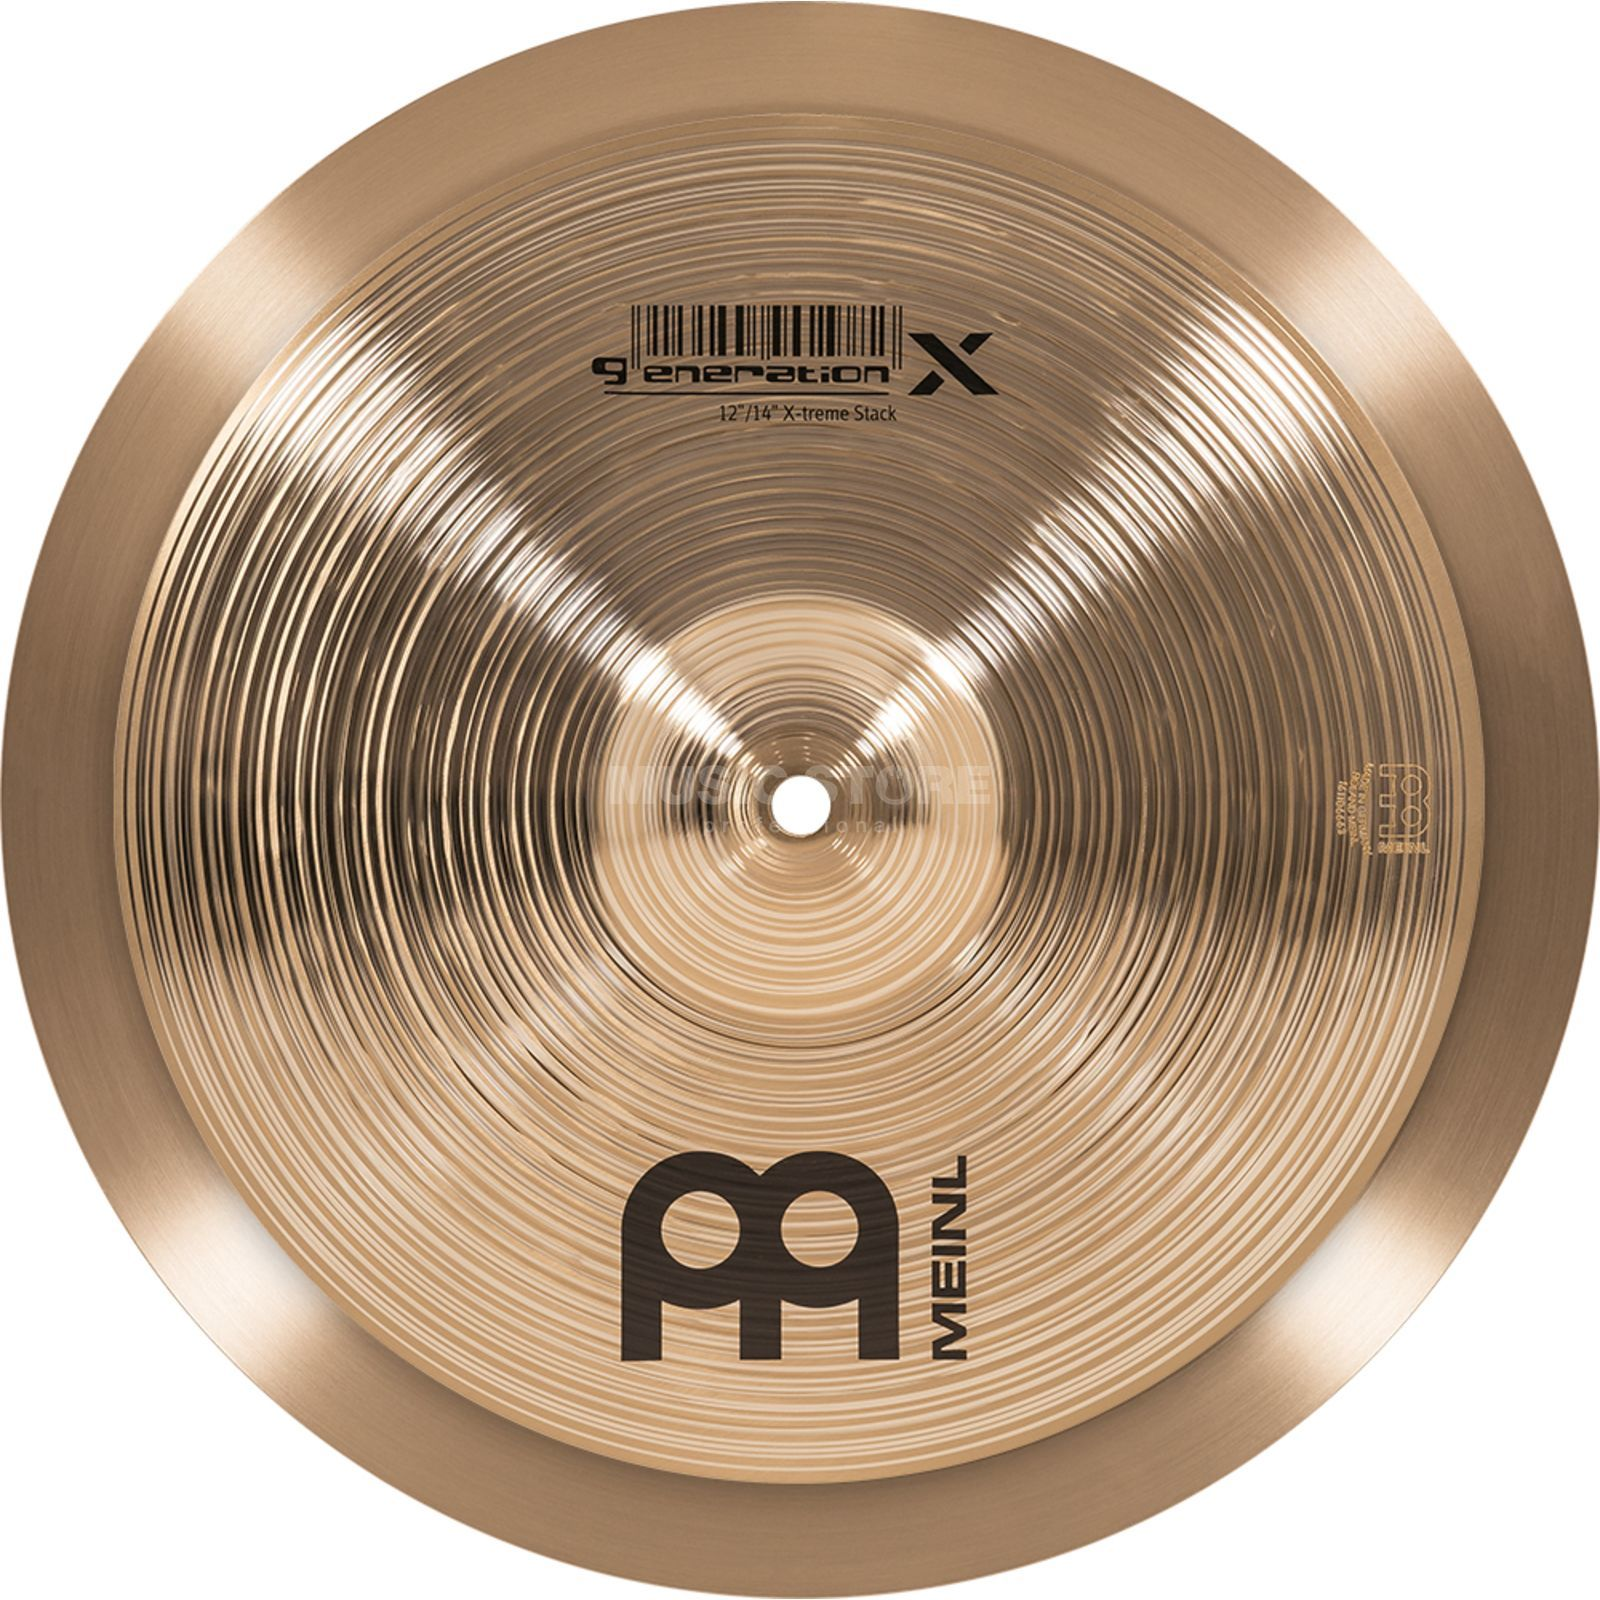 "Meinl Generation X Extreme Stack 12""/14"", GX-12/14XTS Product Image"